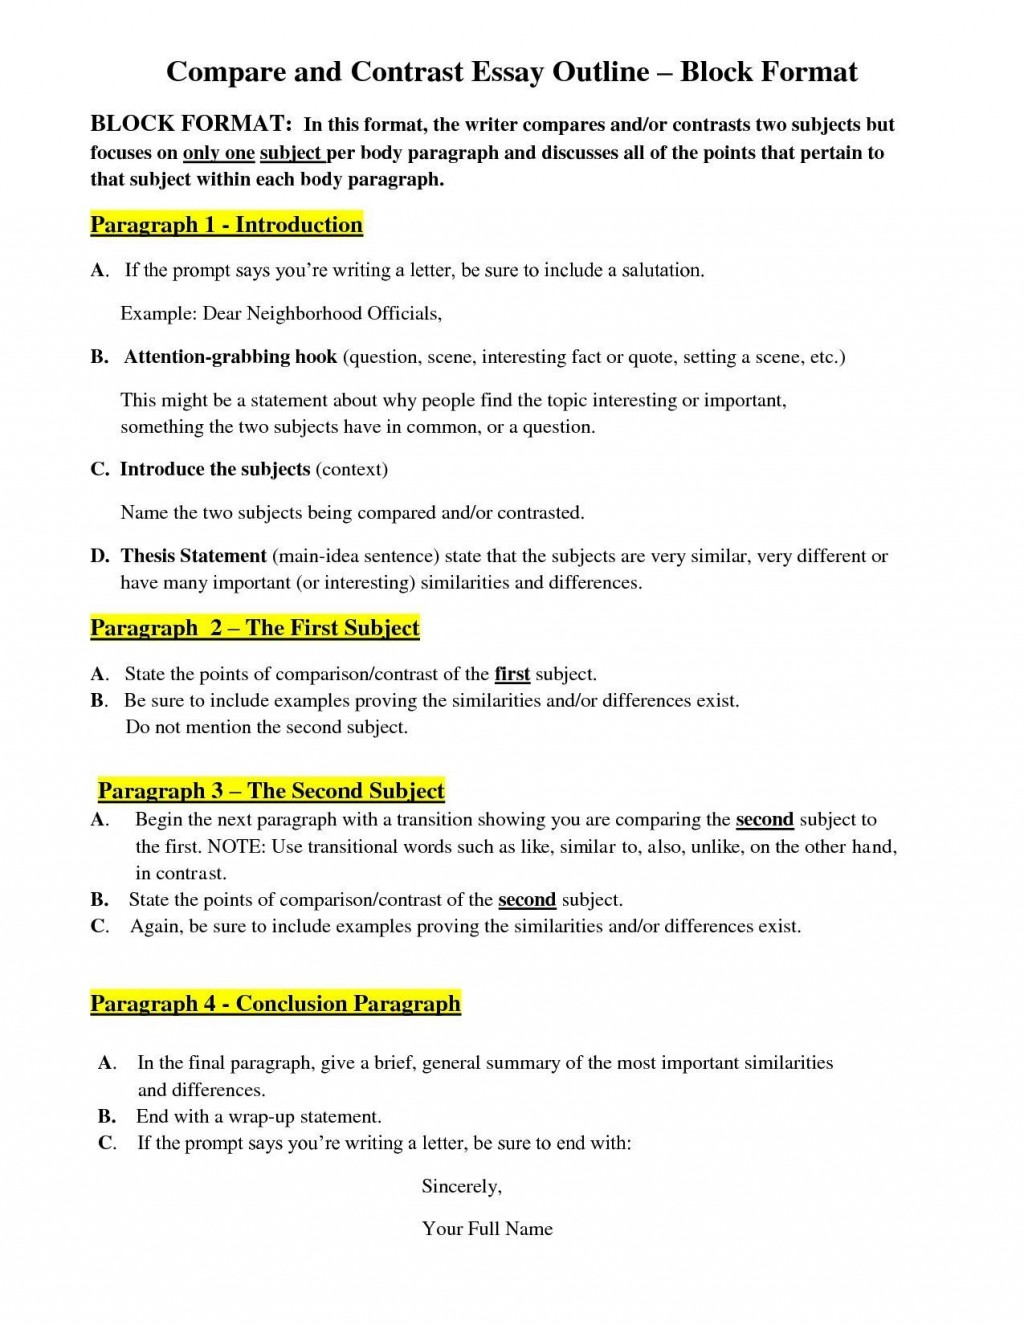 007 Compare And Contrast Essay Frightening Outline Block Method Ideas High School Template For Middle Large